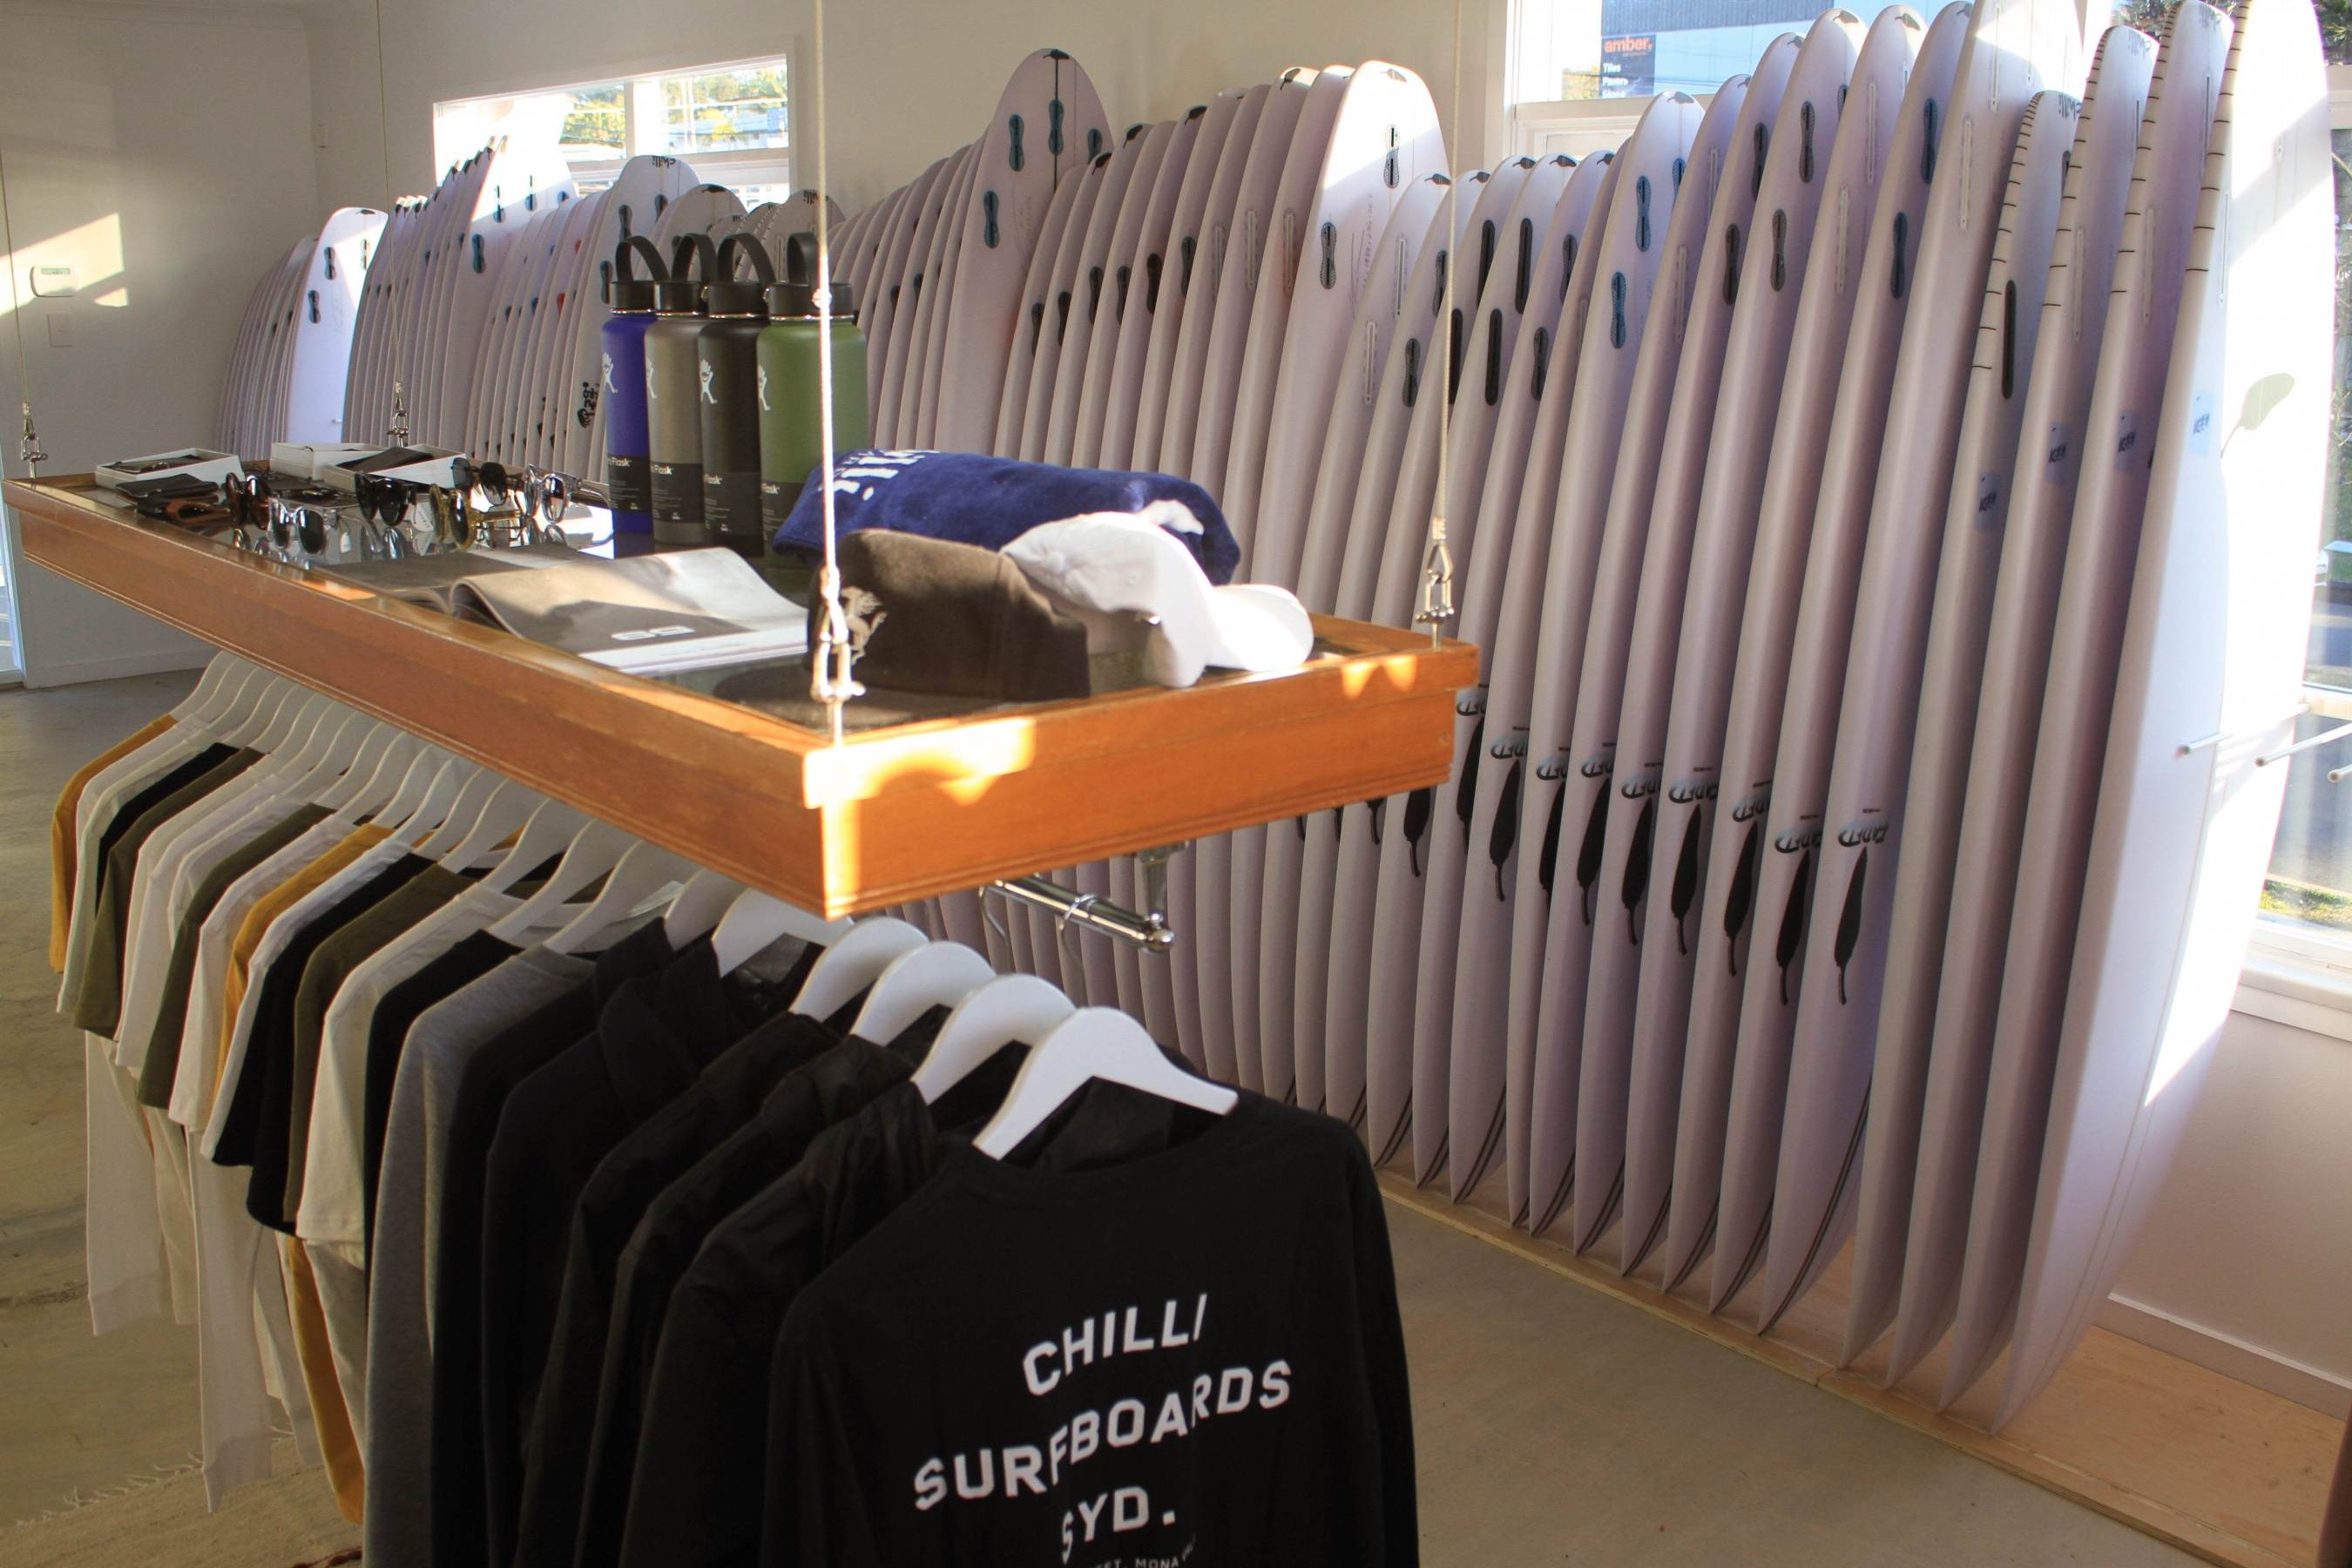 Chiili surfboards